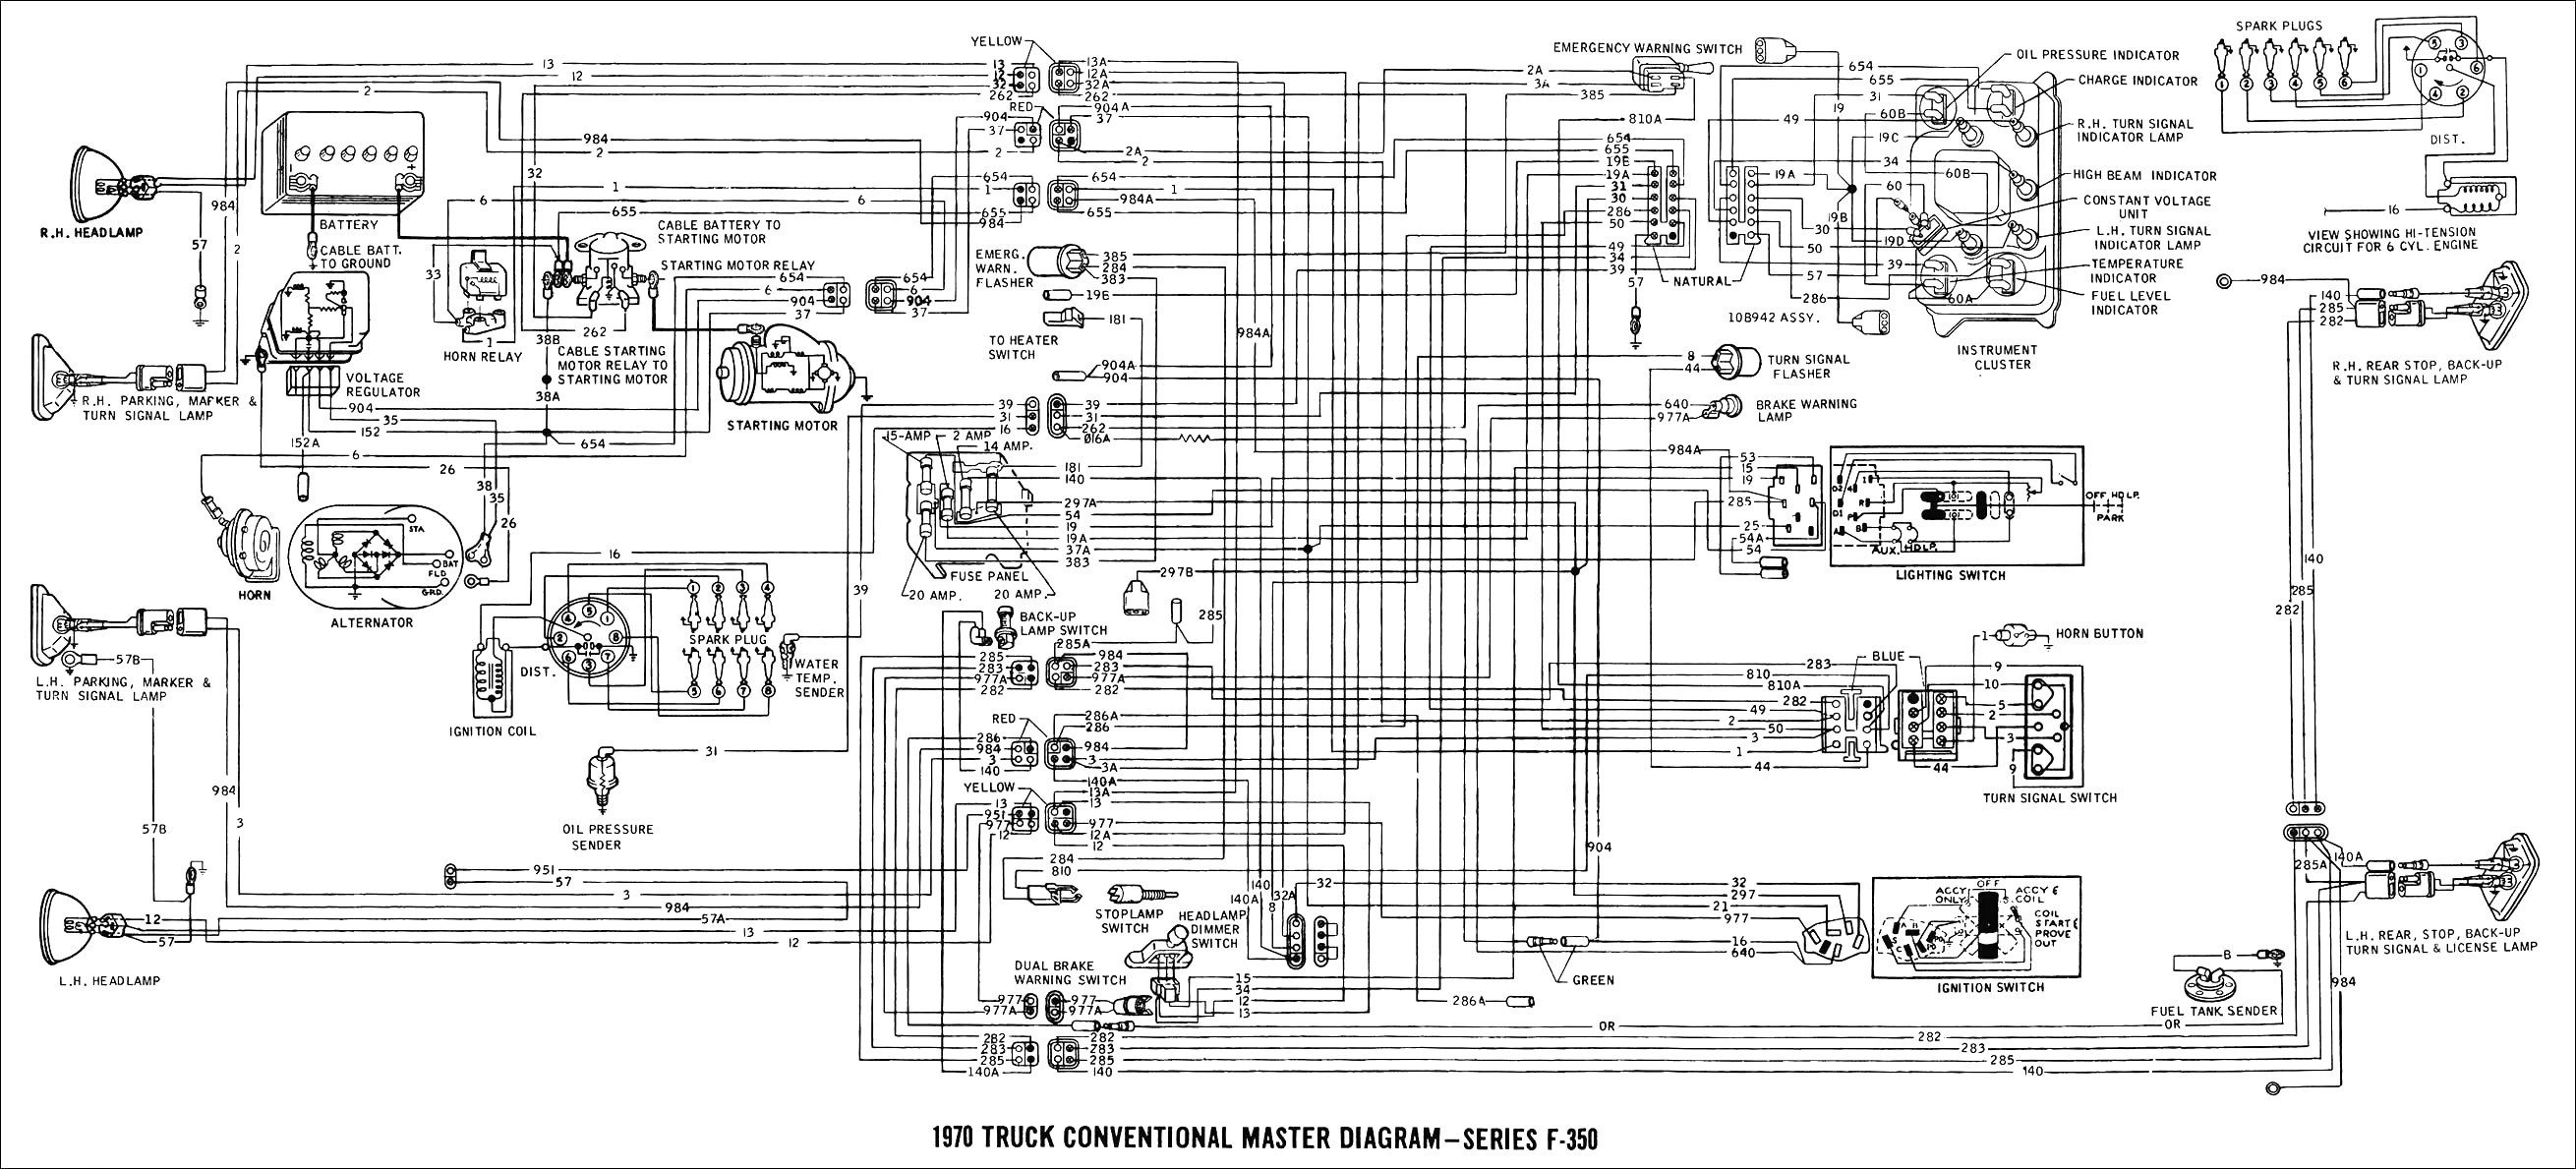 Harley Davidson Alarm Wiring Diagram Diagrams Schematics Within besides Awesome Sportster Clutch Diagram And Installation Instructions And Diagram Harley Sportster Clutch Assembly Diagram as well D Bigbear X Wiring Yamaha Big Bear Wiring Diagram in addition Yamaha Banshee Engine Diagram Yamaha Banshee Wiring Diagram Collection Of Yamaha Banshee Engine Diagram together with Beautiful Sportster Clutch Diagram Or Motorcycle Exploded Clutch Views Clutch Diagram Click The Picture For The Full Size Harley Sportster Clutch Assembly Diagram. on honda rancher wiring diagram worksheet jpg